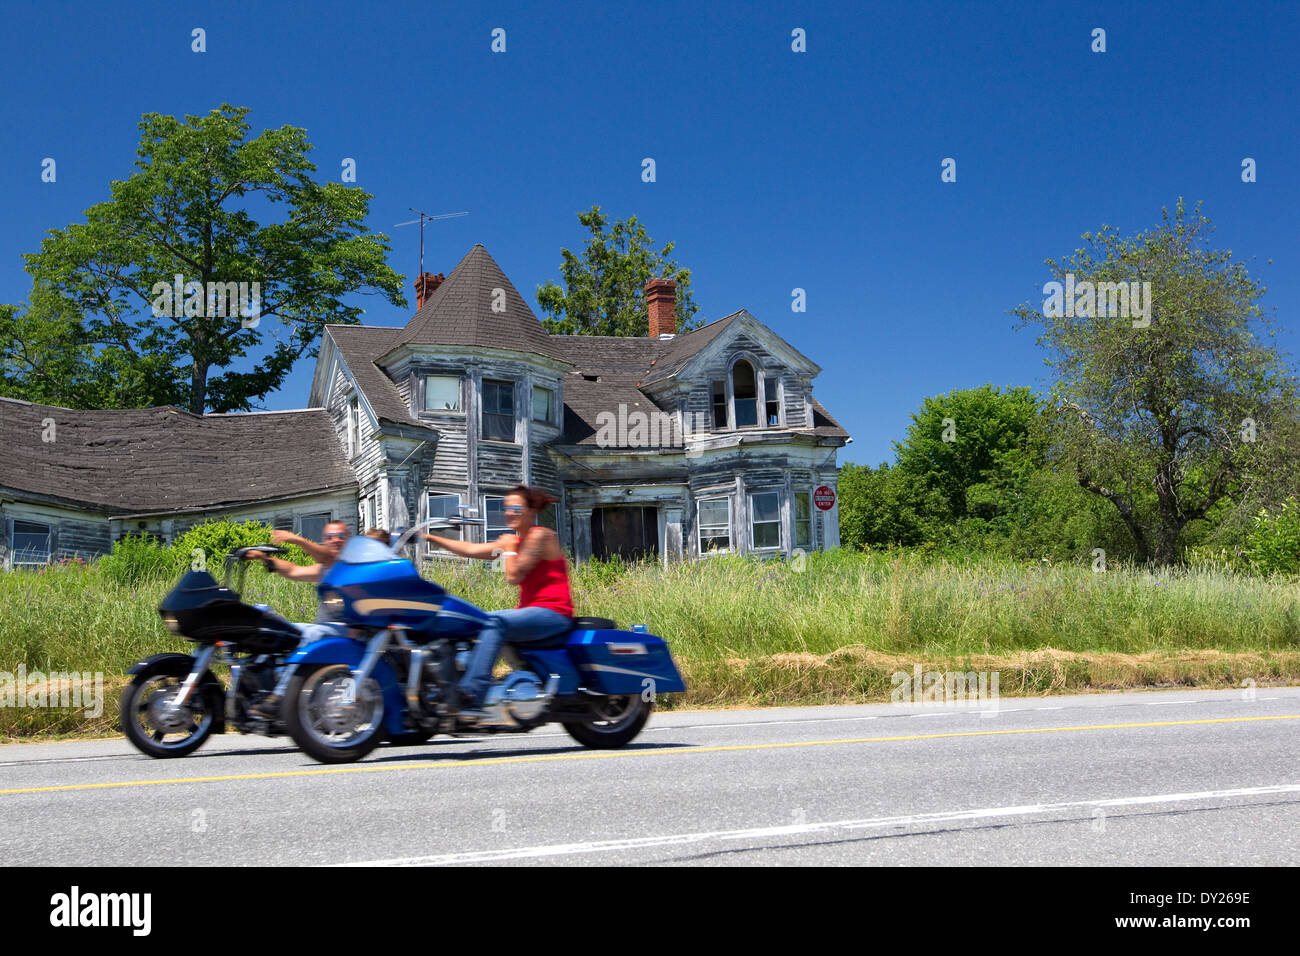 Motorcyclists ride by an abandoned, dilapidated old house from a bygone era, Maine, USA - Stock Image